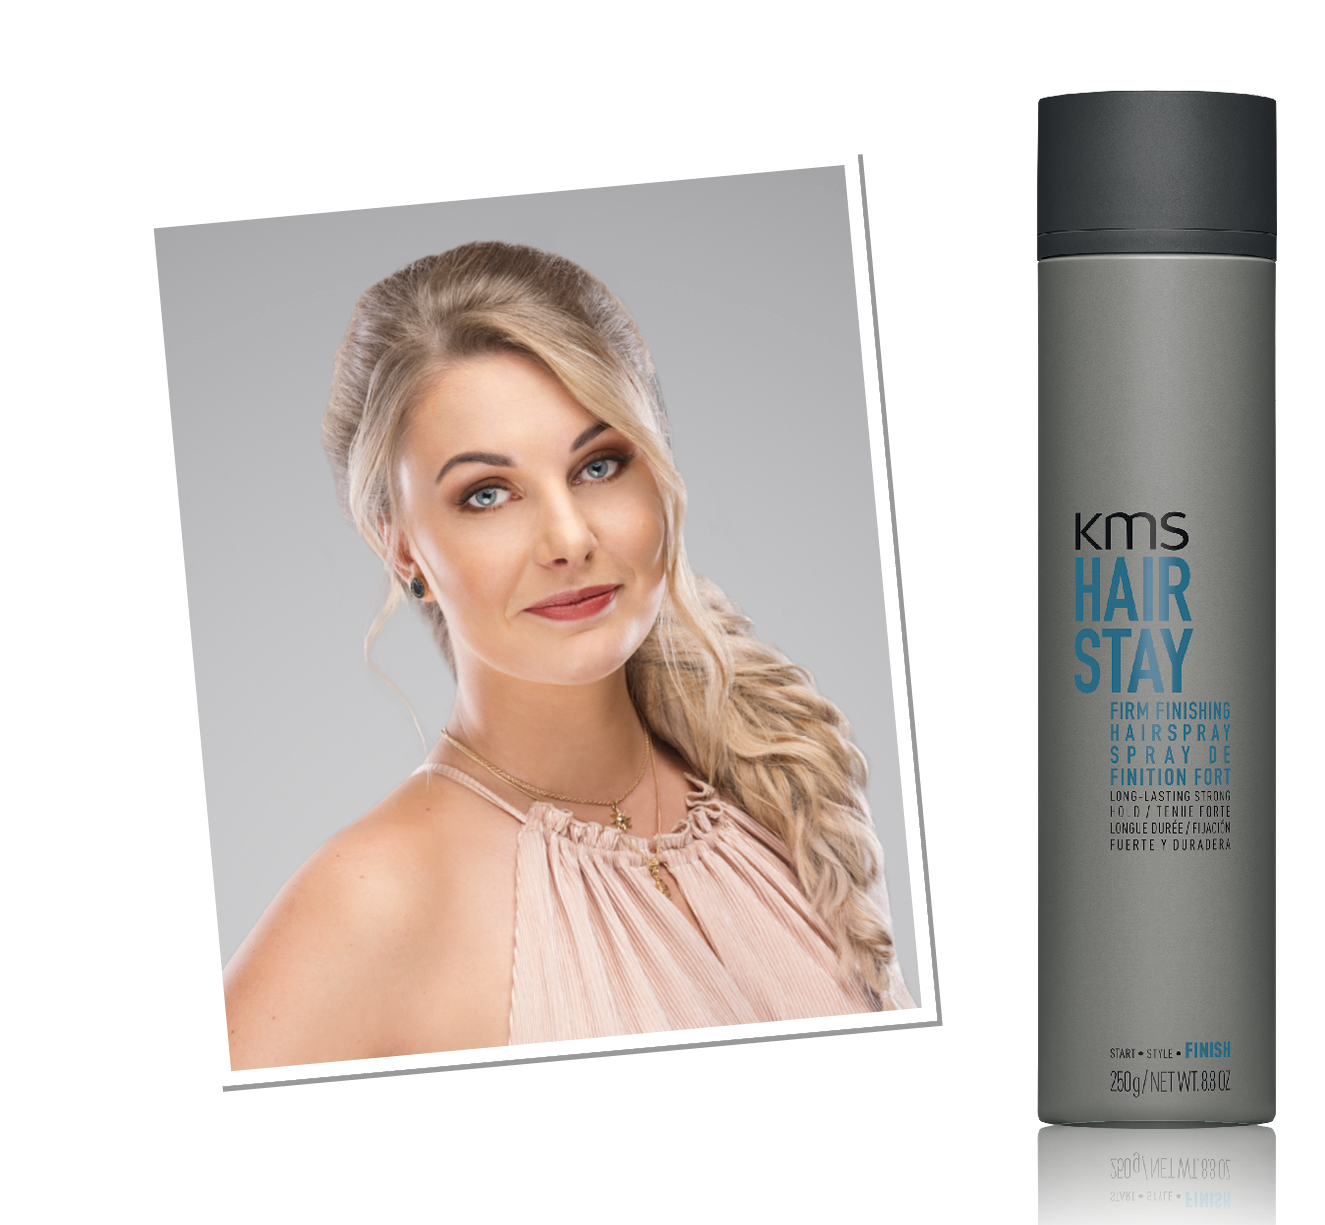 Hairstay Firm Finishing Spray